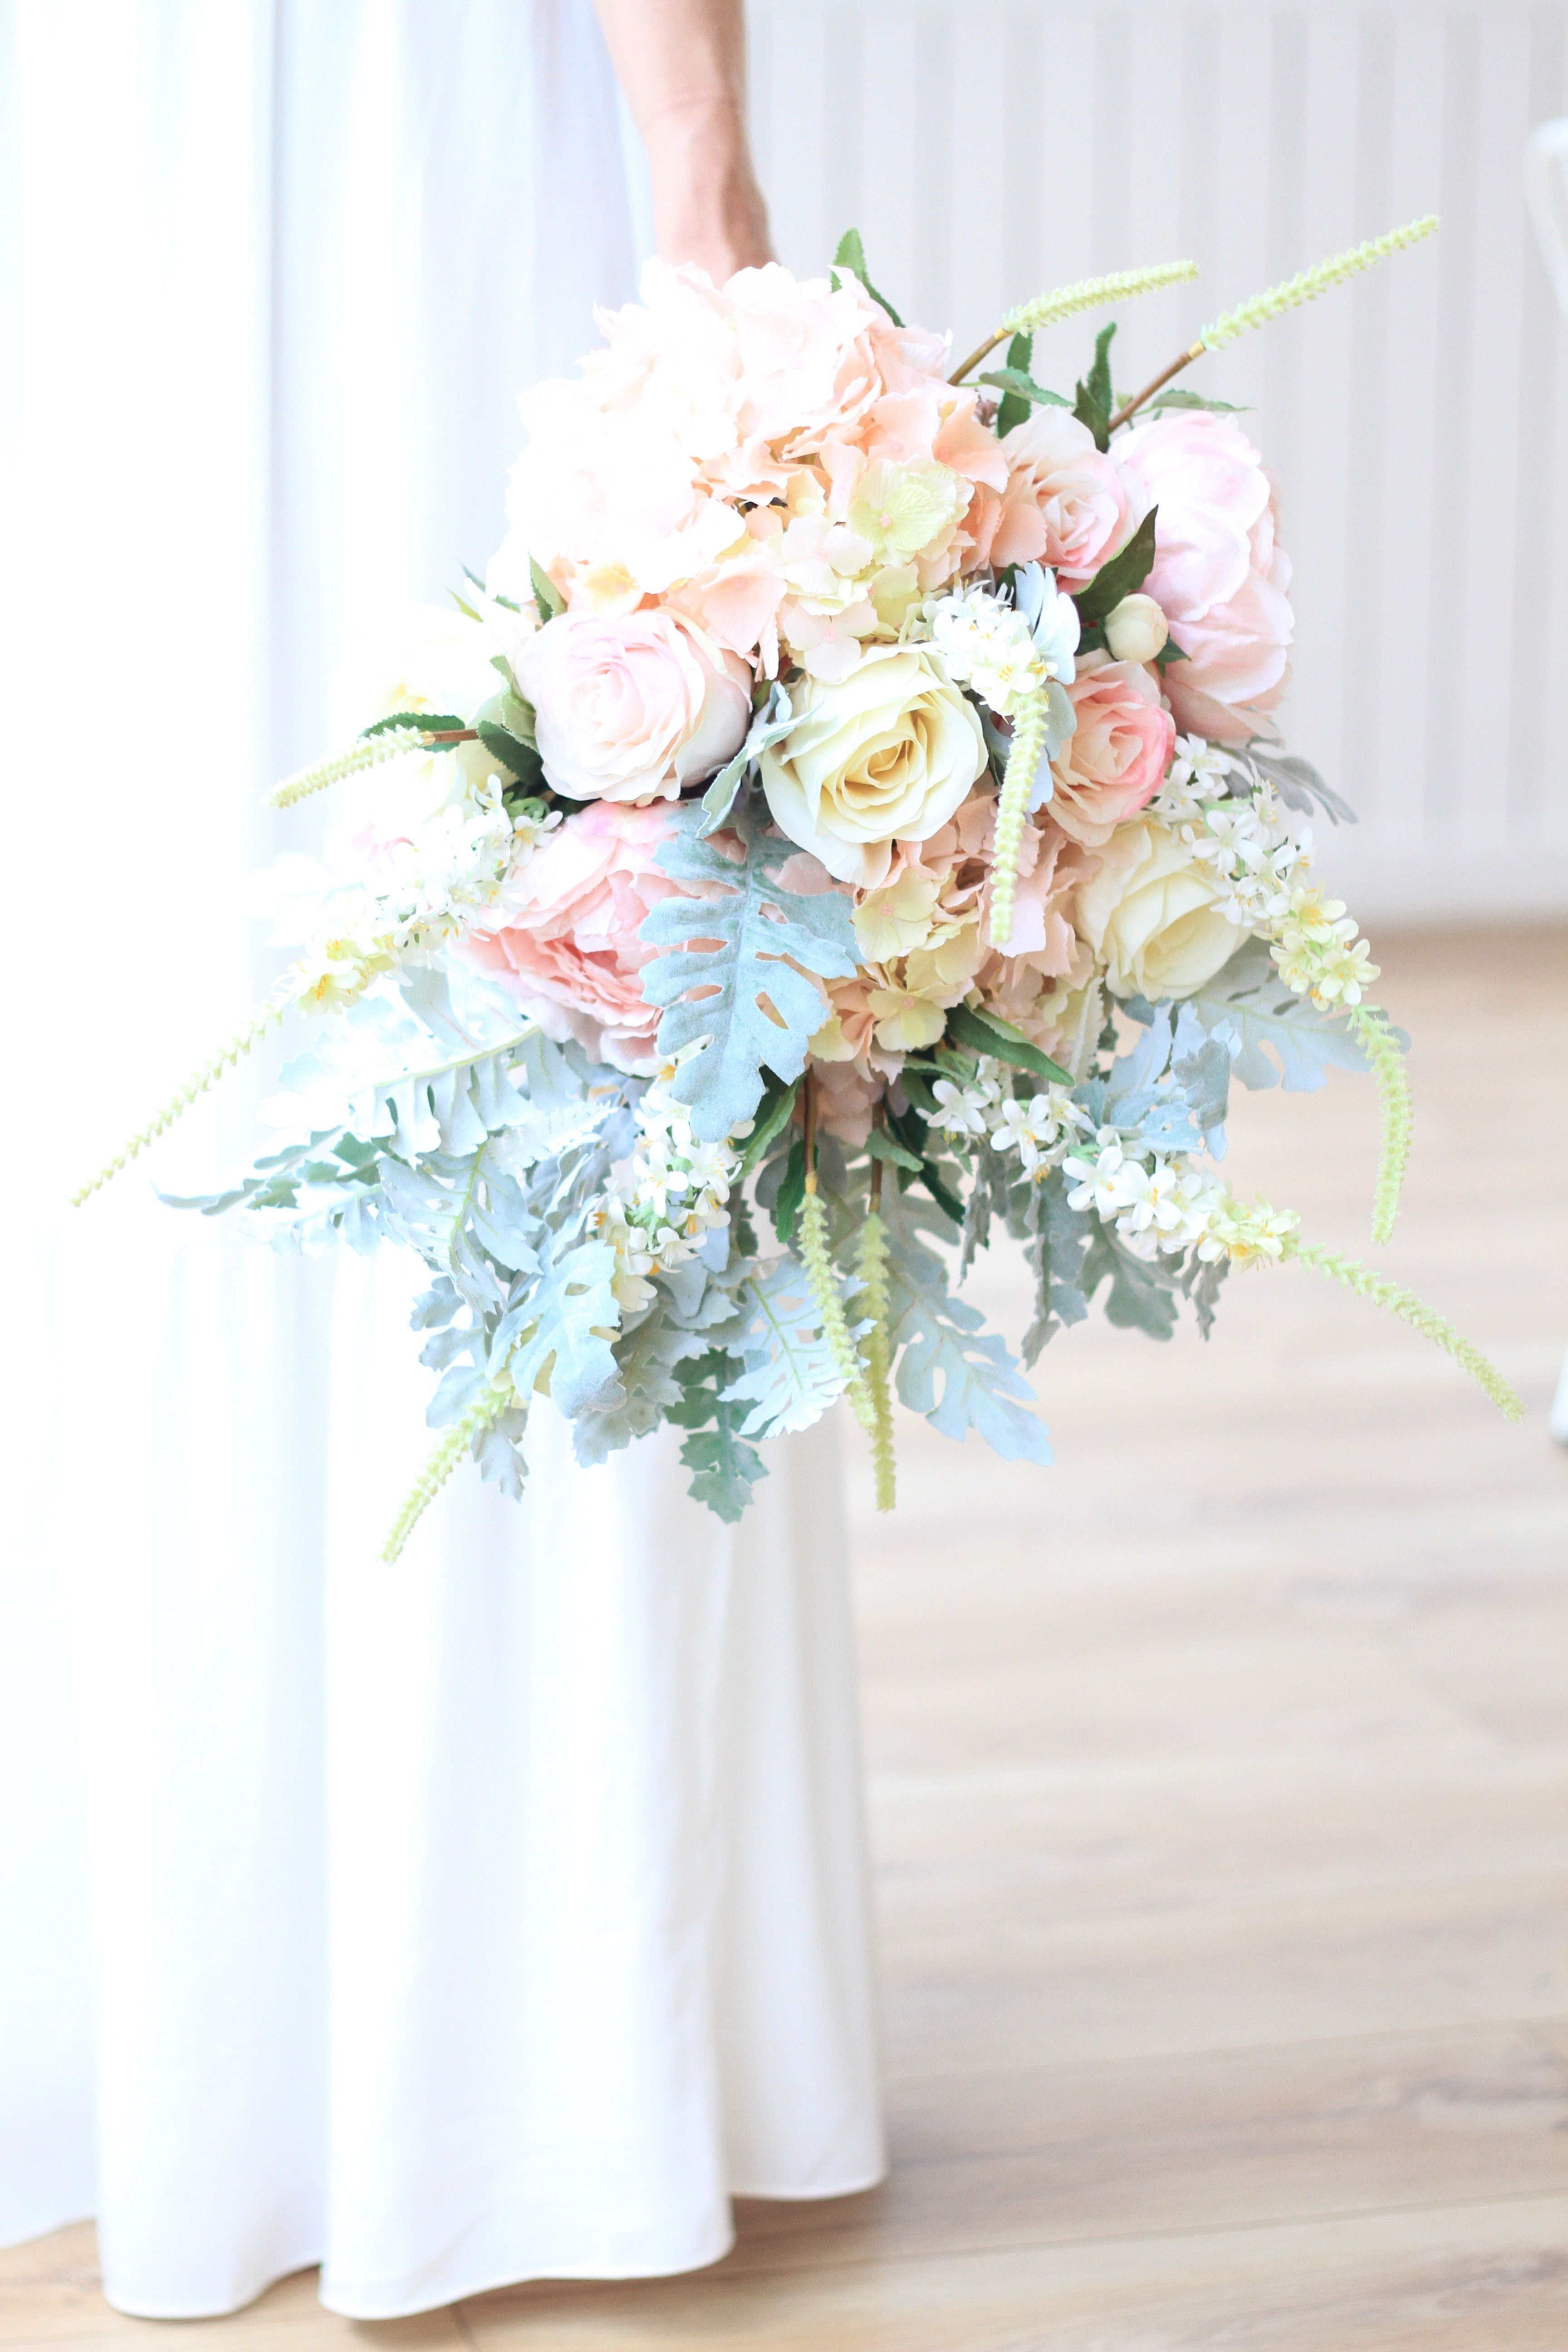 Stunning pink and white faux bridal bouquet. Luxury